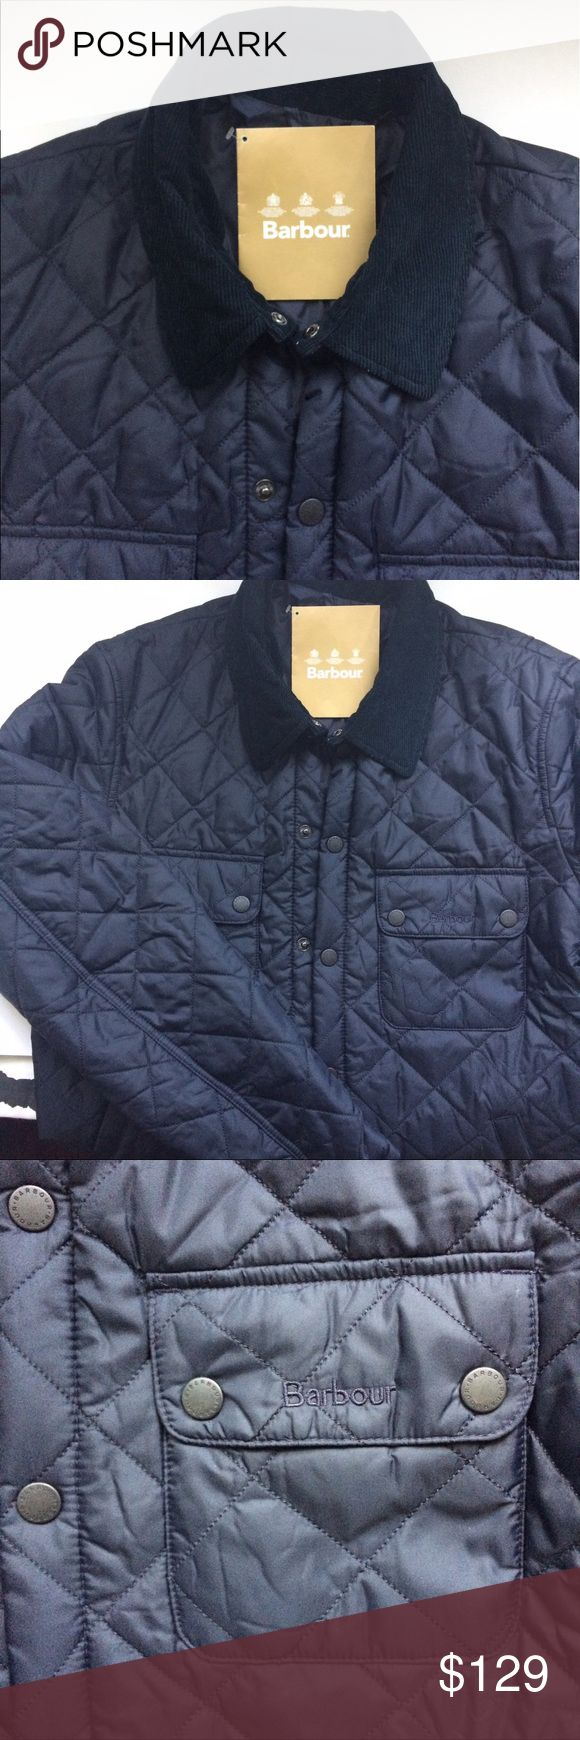 """NWT Barbour Quilted Jacket Side and front pockets, brand new, corduroy collar, 30"""" long, 20"""" wide from armpit to armpit measured laying flat Barbour Jackets & Coats"""